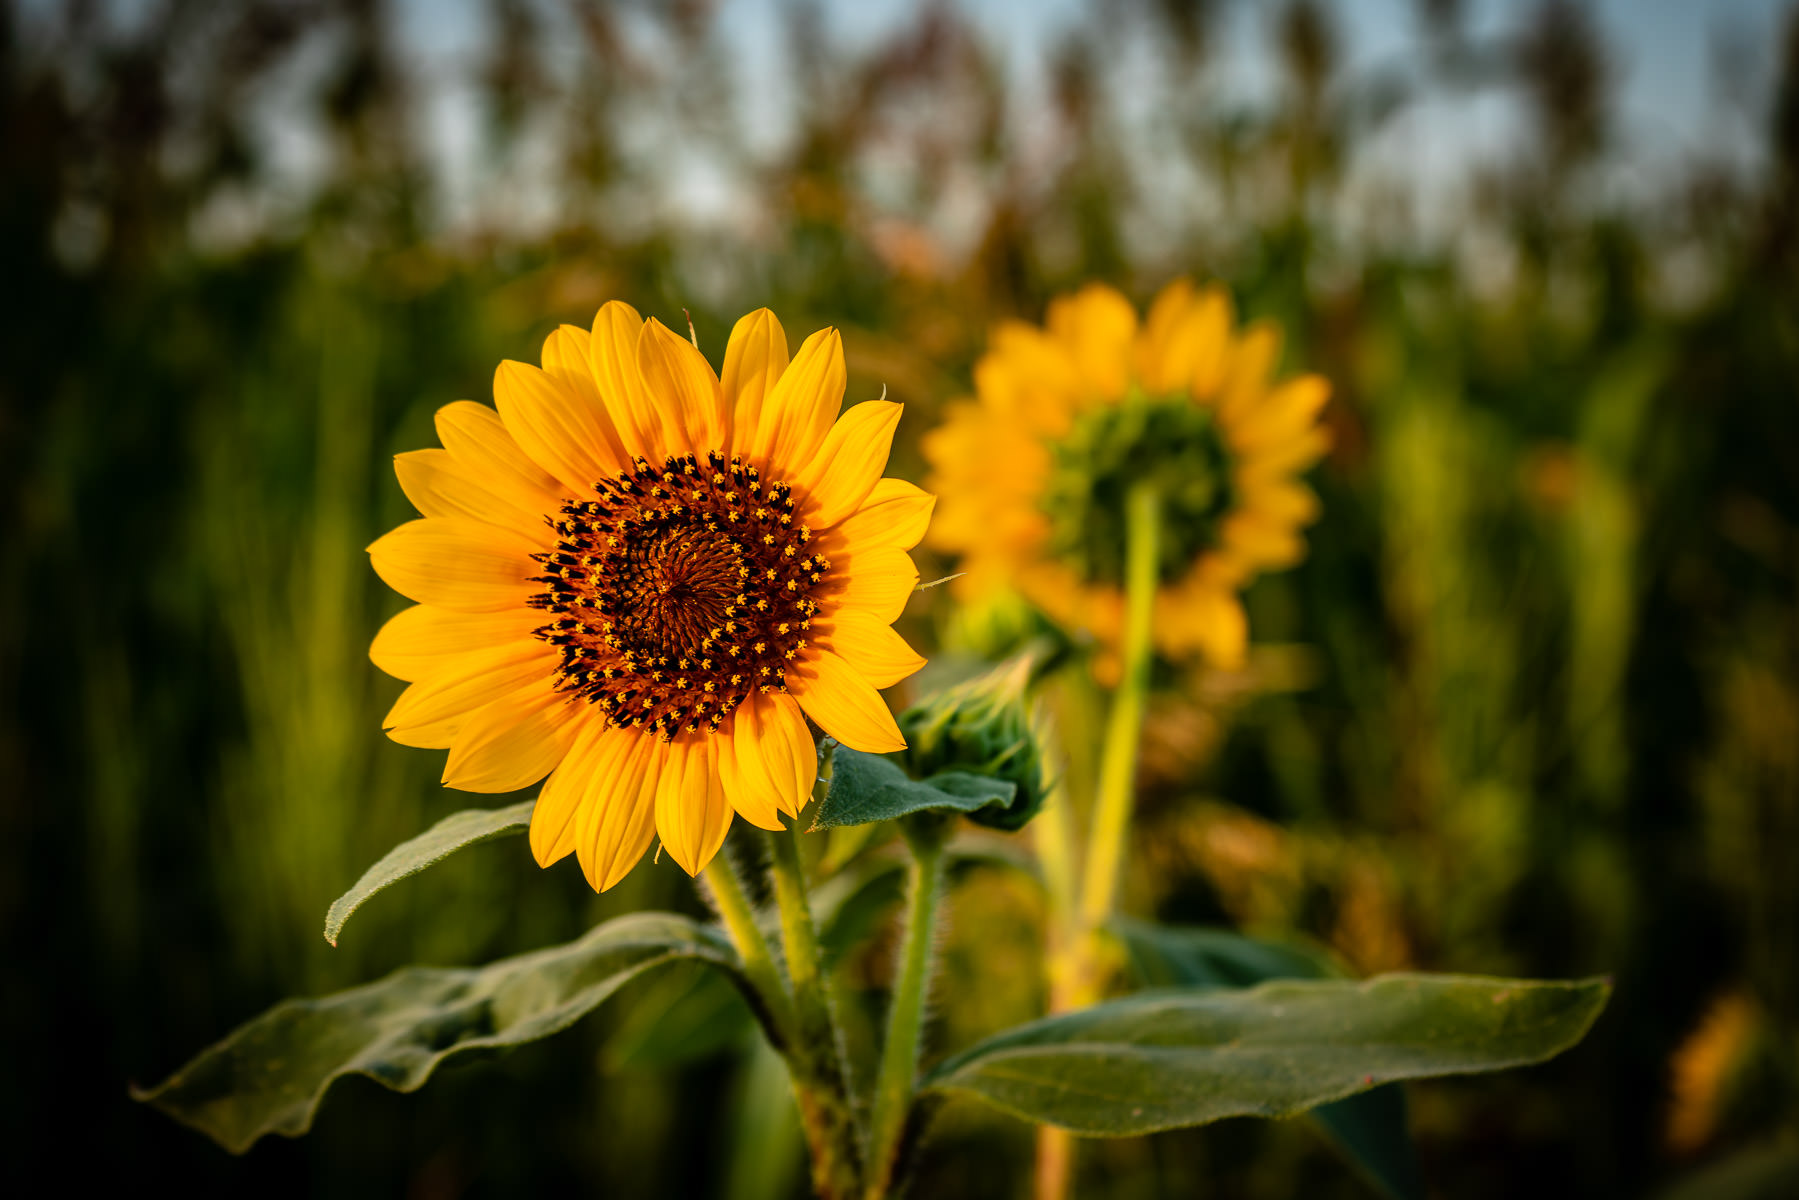 Sunflowers catch the early-morning sun in a field at Frisco, Texas.